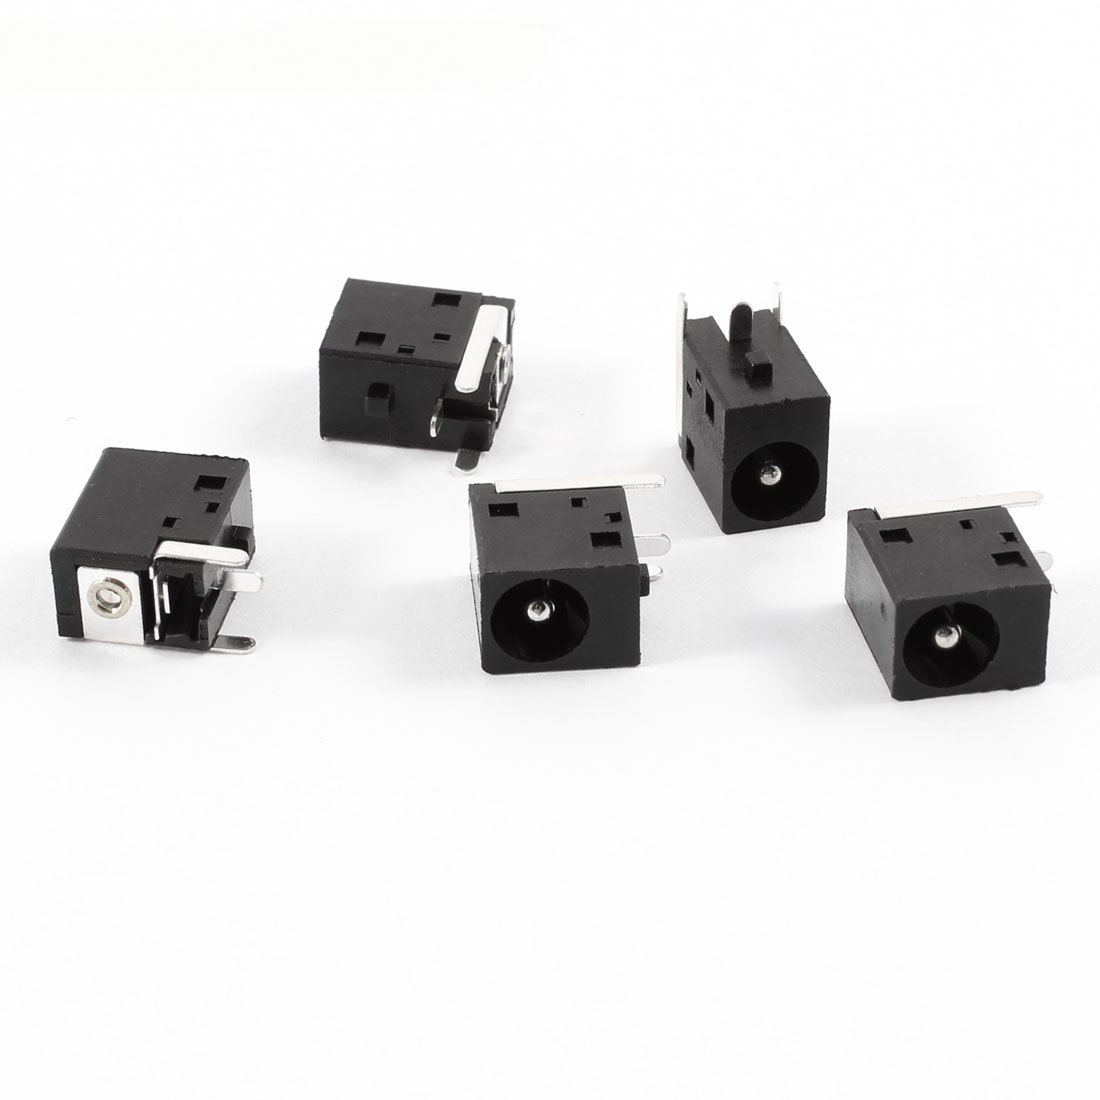 5 Pcs PJ001B DC Power Jack Connector for GATEWAY Solo 600YGX 600YGR 600YG2